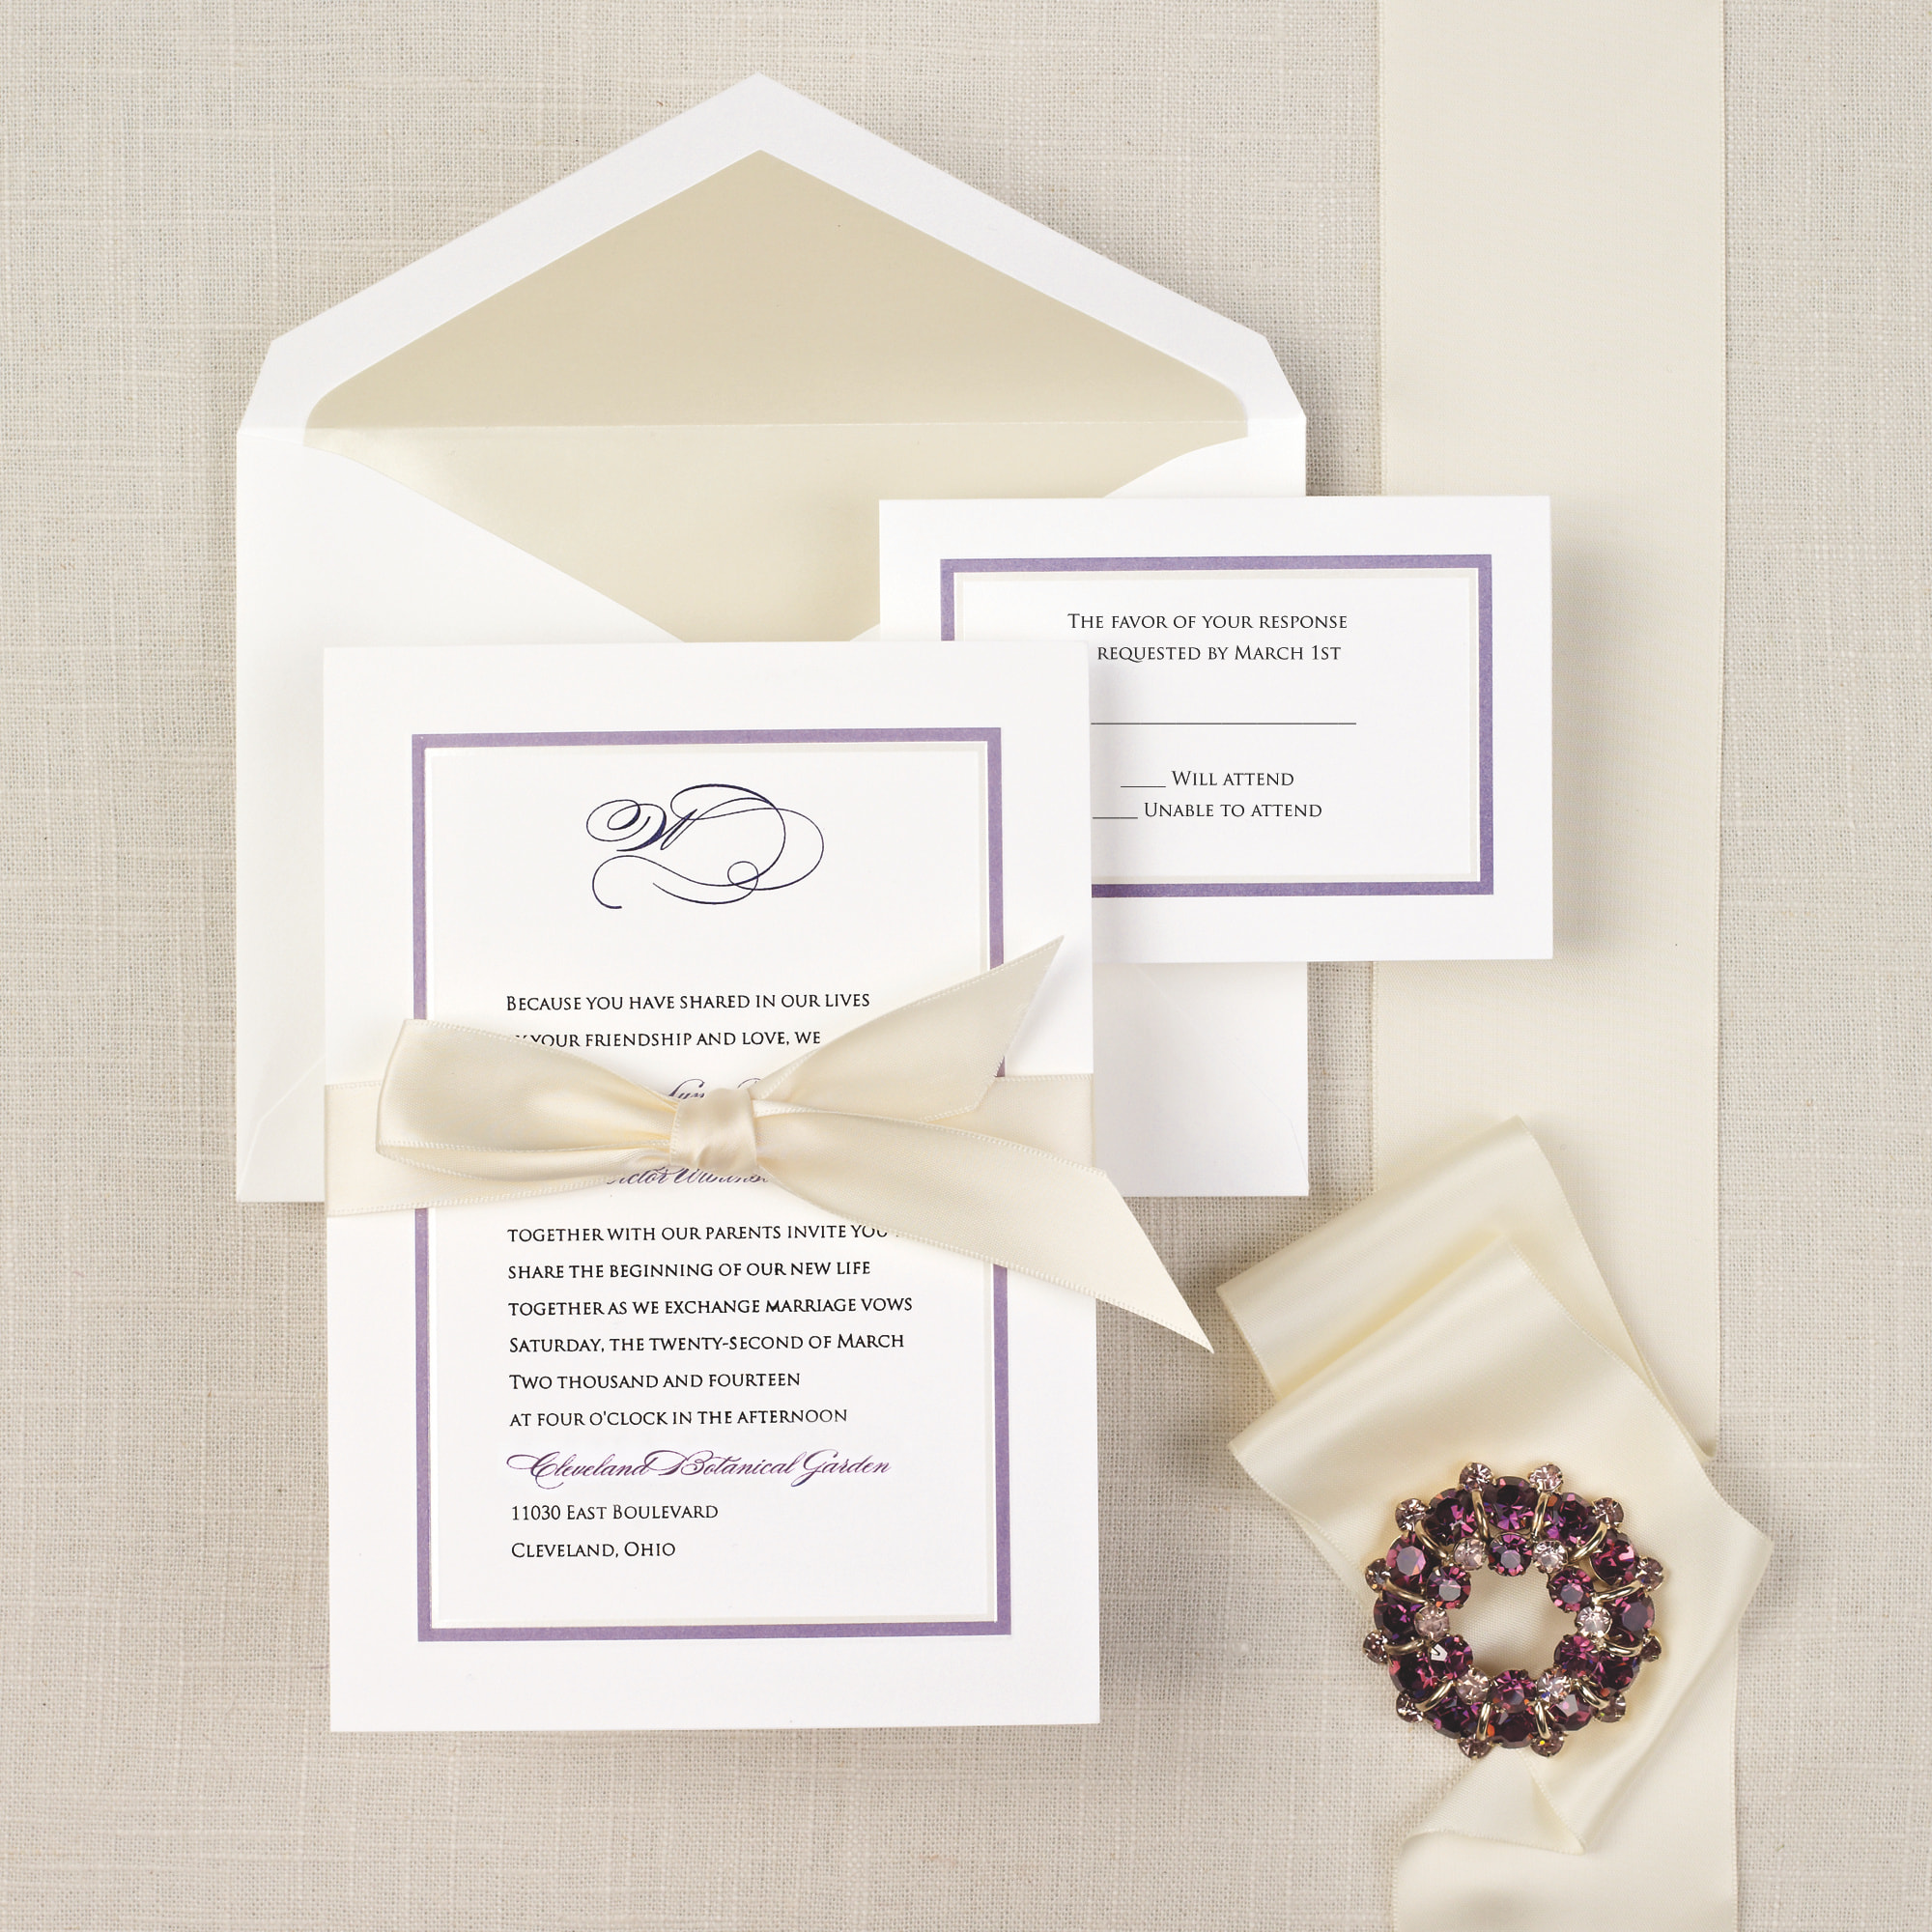 colorful chic wedding invitation classic and simple wedding invitations - Weddings Invitations